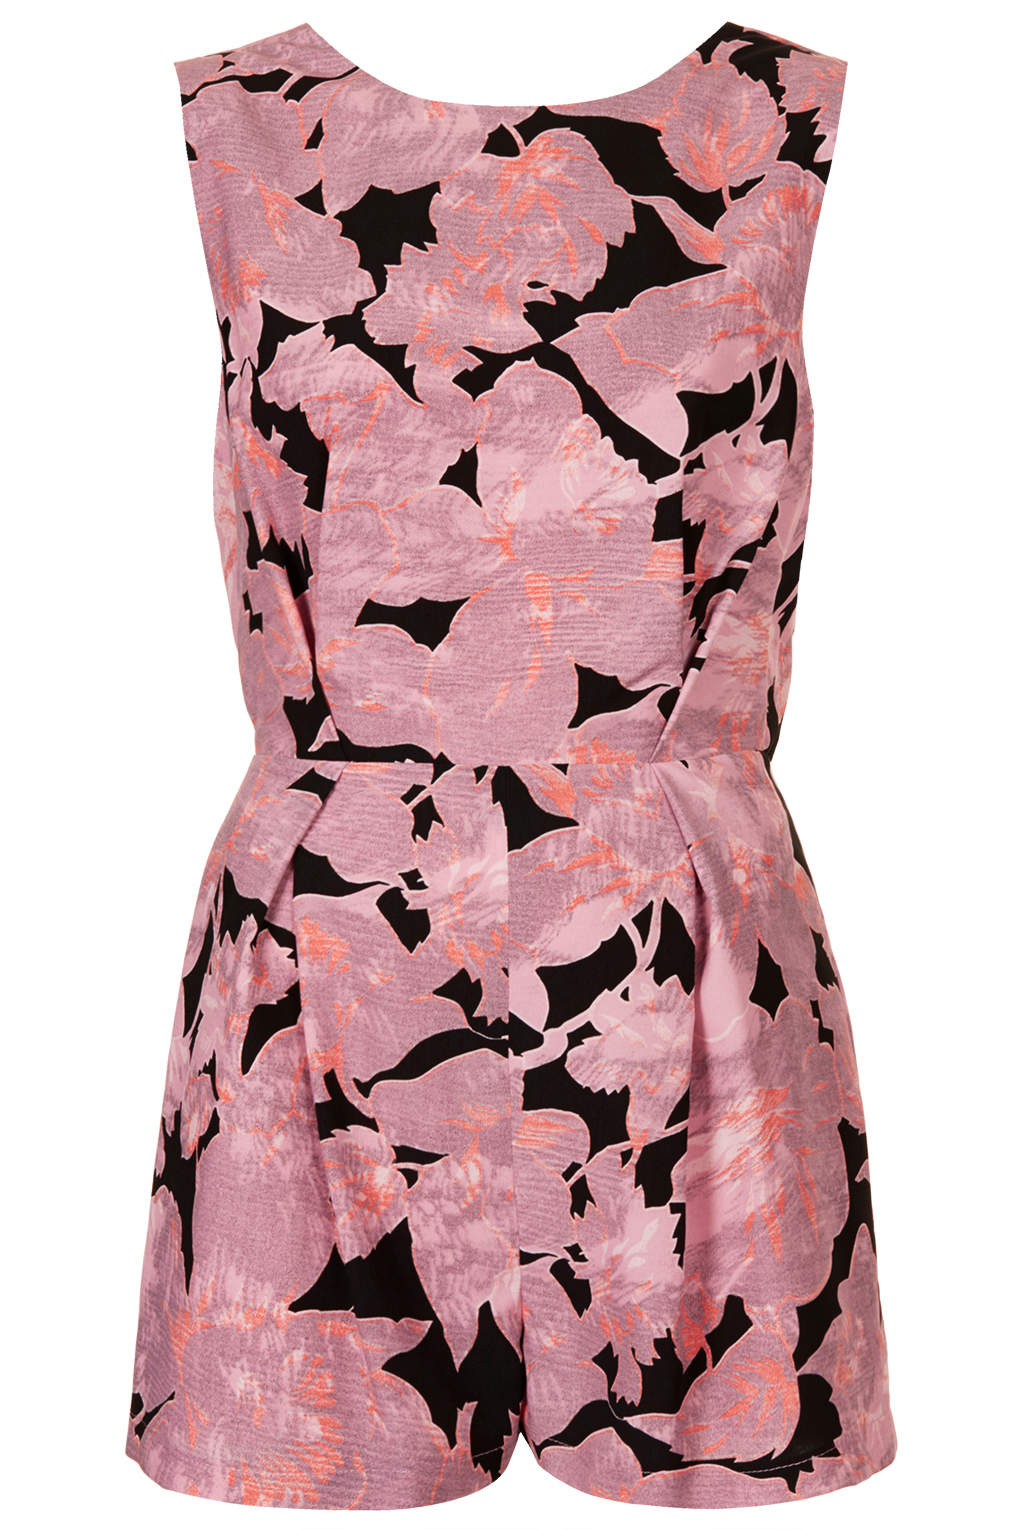 d9cf8a8821 Lyst - TOPSHOP Chateau Femme Playsuit in Pink